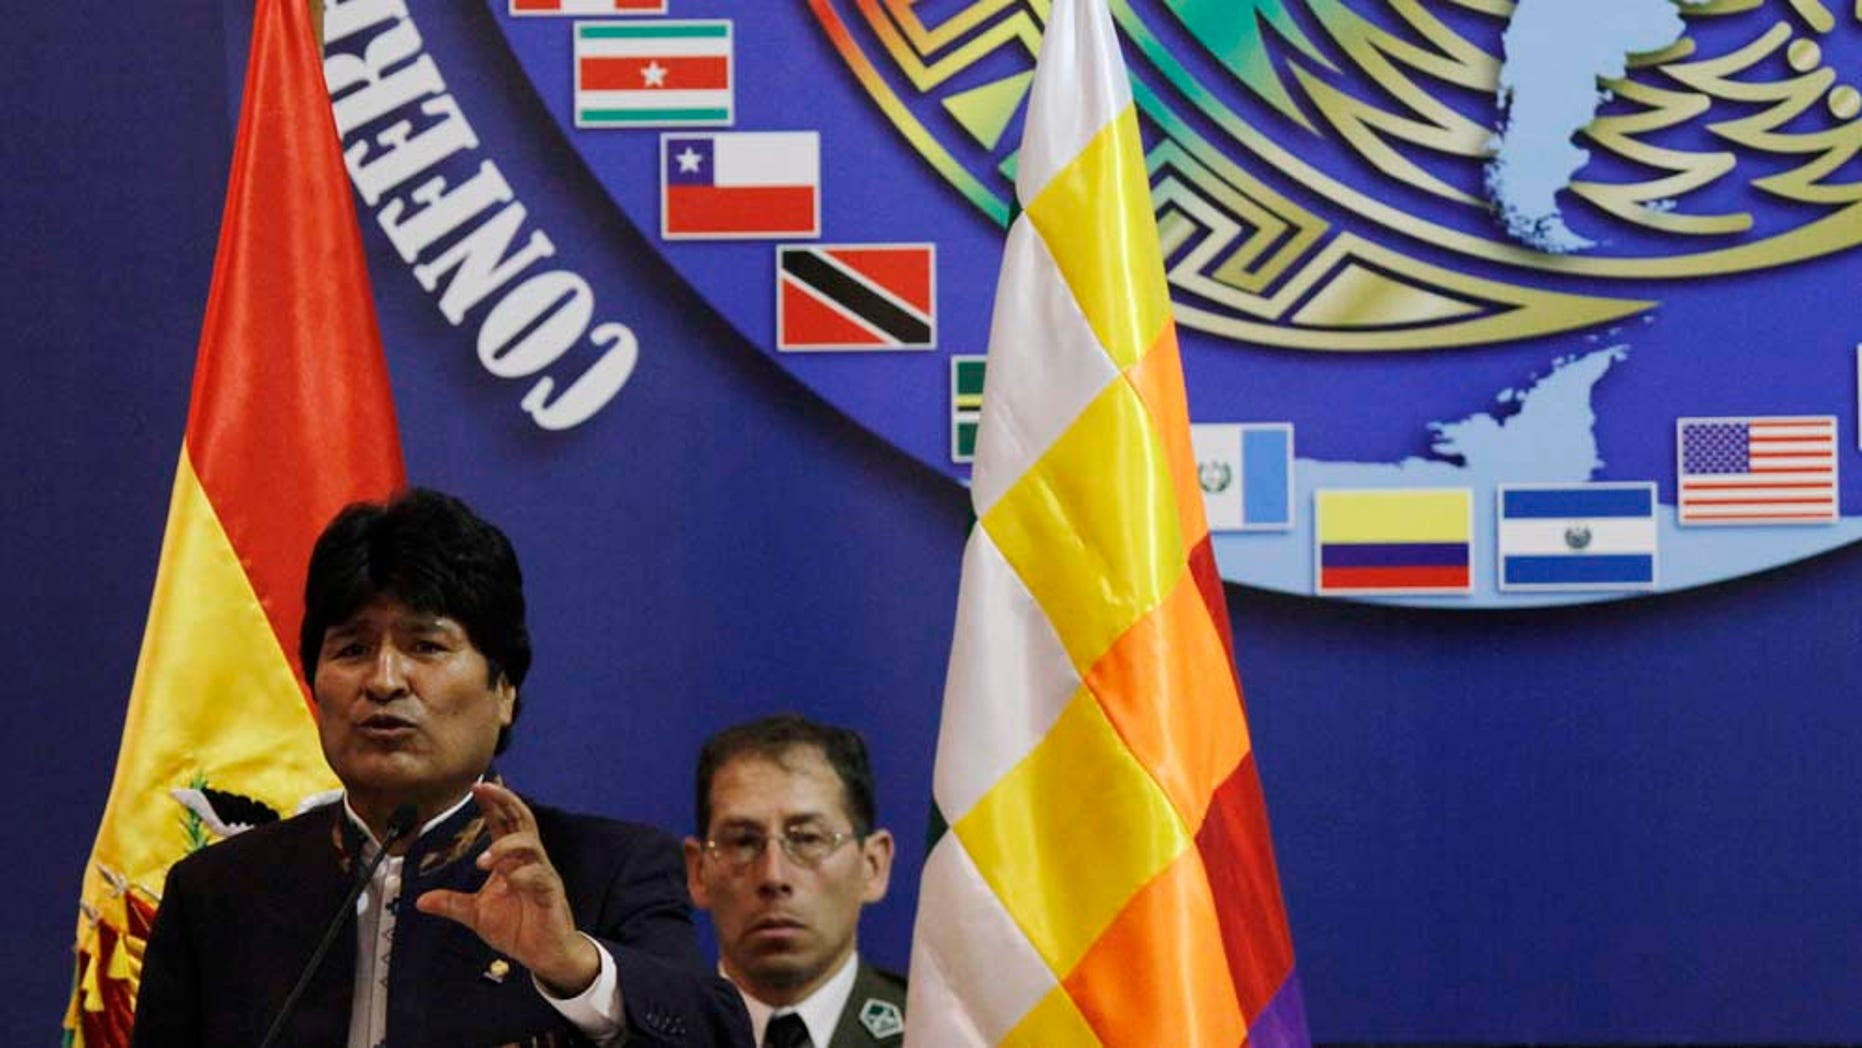 Bolivia's President Evo Morales speaks during the opening of the Ninth Conference of Defense Ministers of the Americas (CDMA) in Santa Cruz, Bolivia, Monday Nov. 22, 2010.  (AP Photo/Juan Karita)